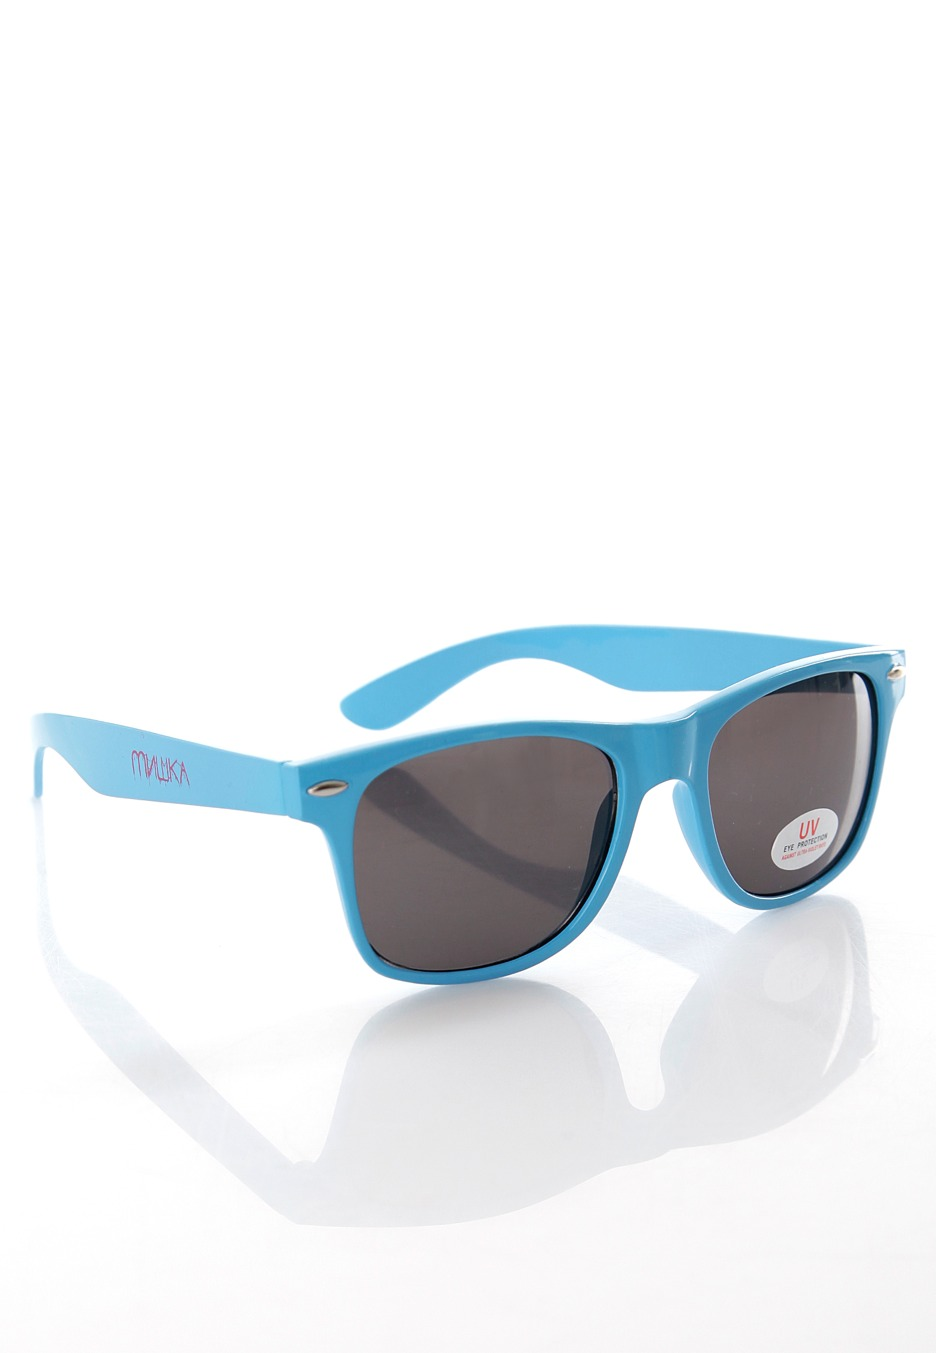 Blue Sunglasses  mishka cyrillic gore blue sunglasses streetwear